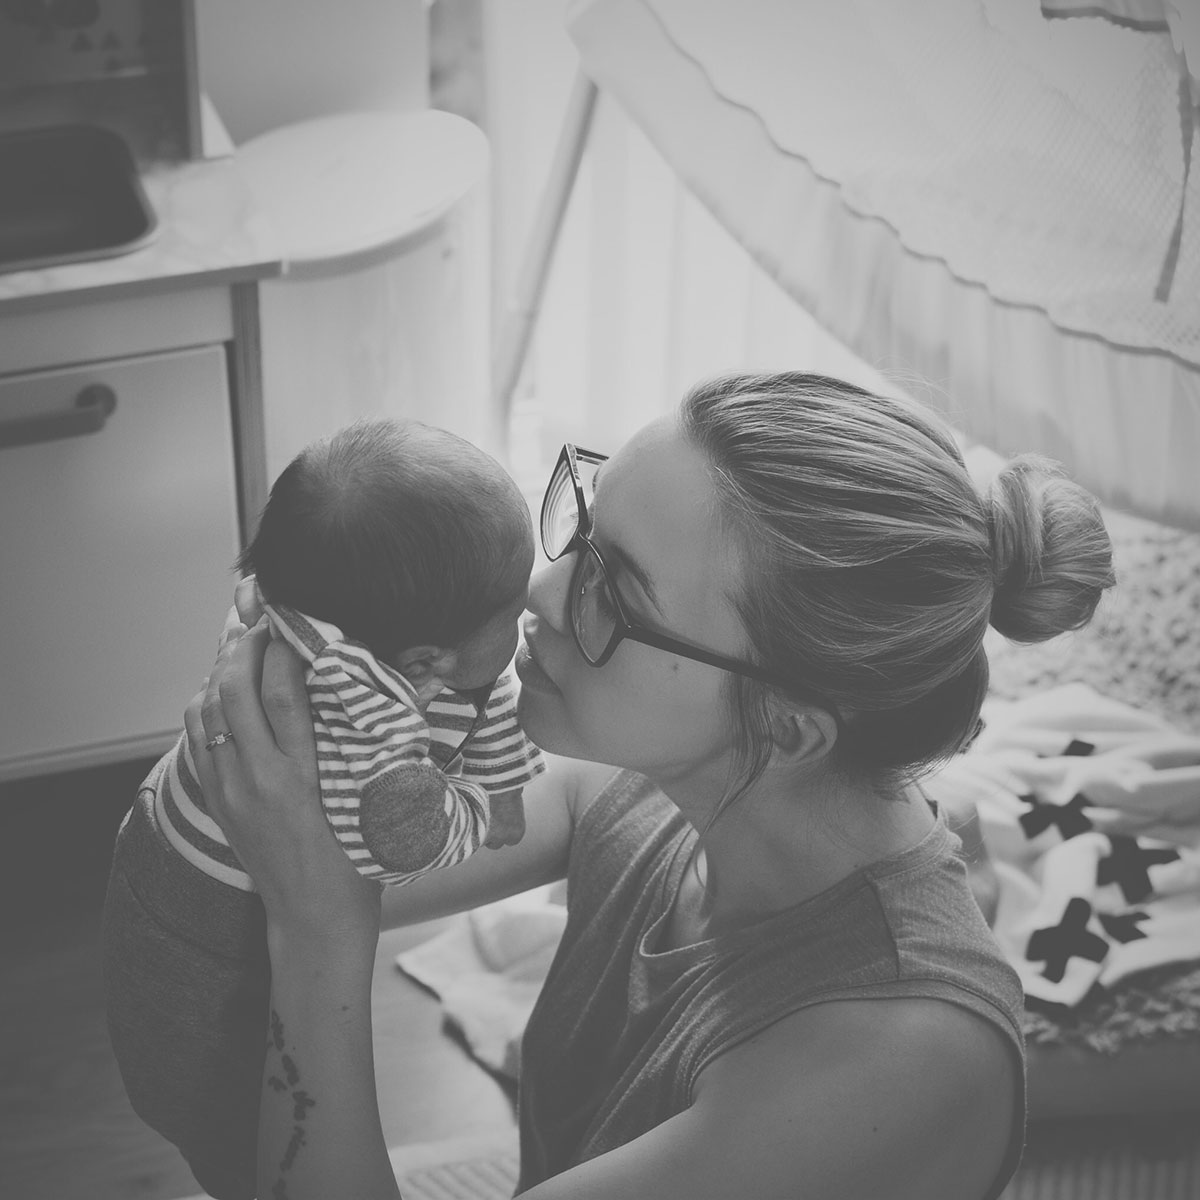 Our month in insta-snaps; August 2016 - Mummy and newborn baby son